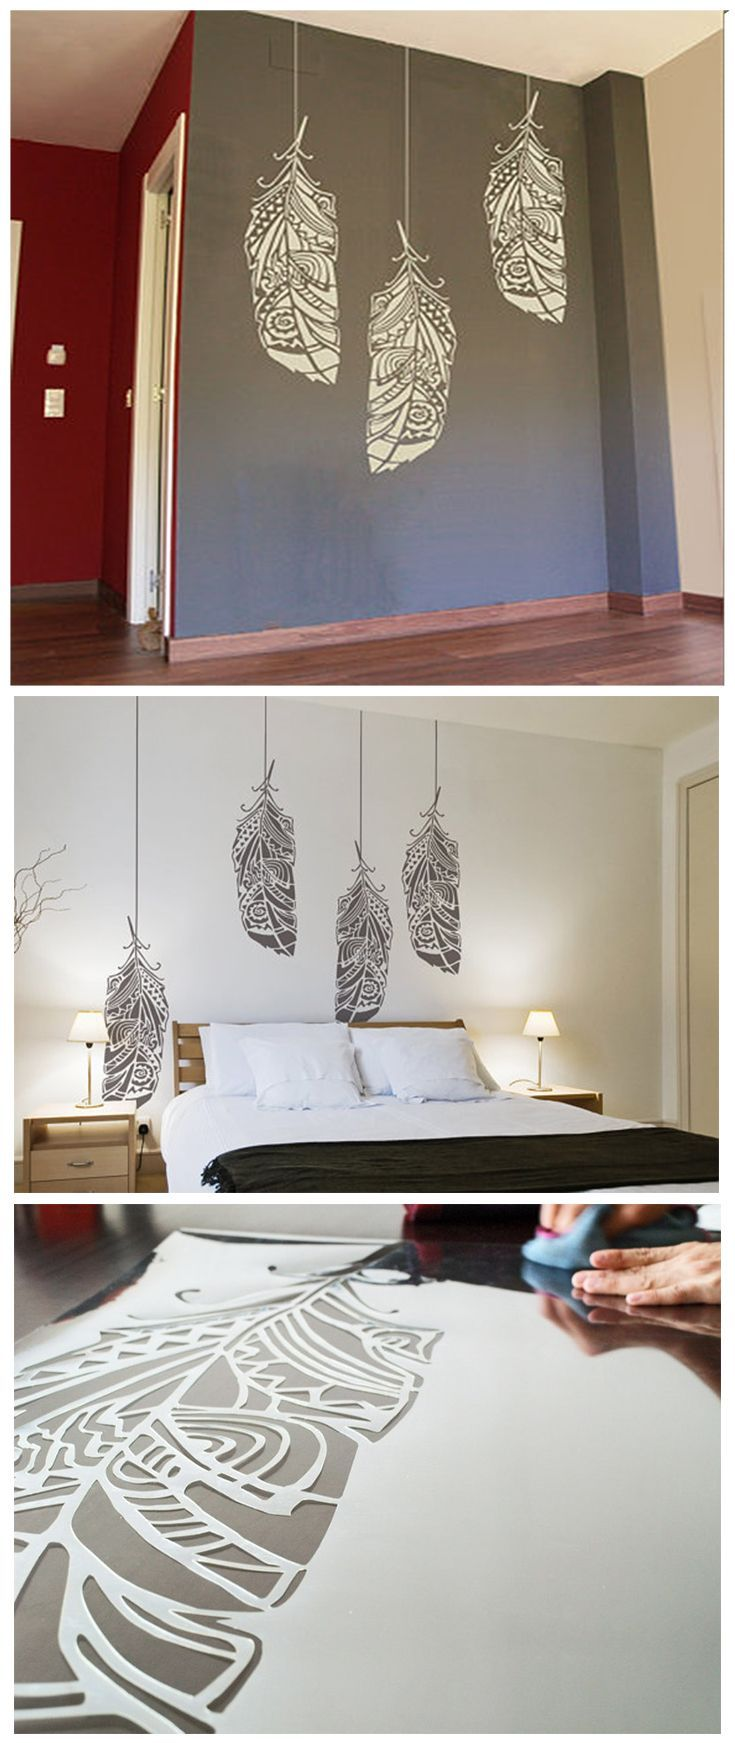 best 25 diy wall painting ideas on pinterest paint walls forest feathers wall stencil decorative scandinavian wall stencil for diy projects tribal pattern easy home decor bohemian wall